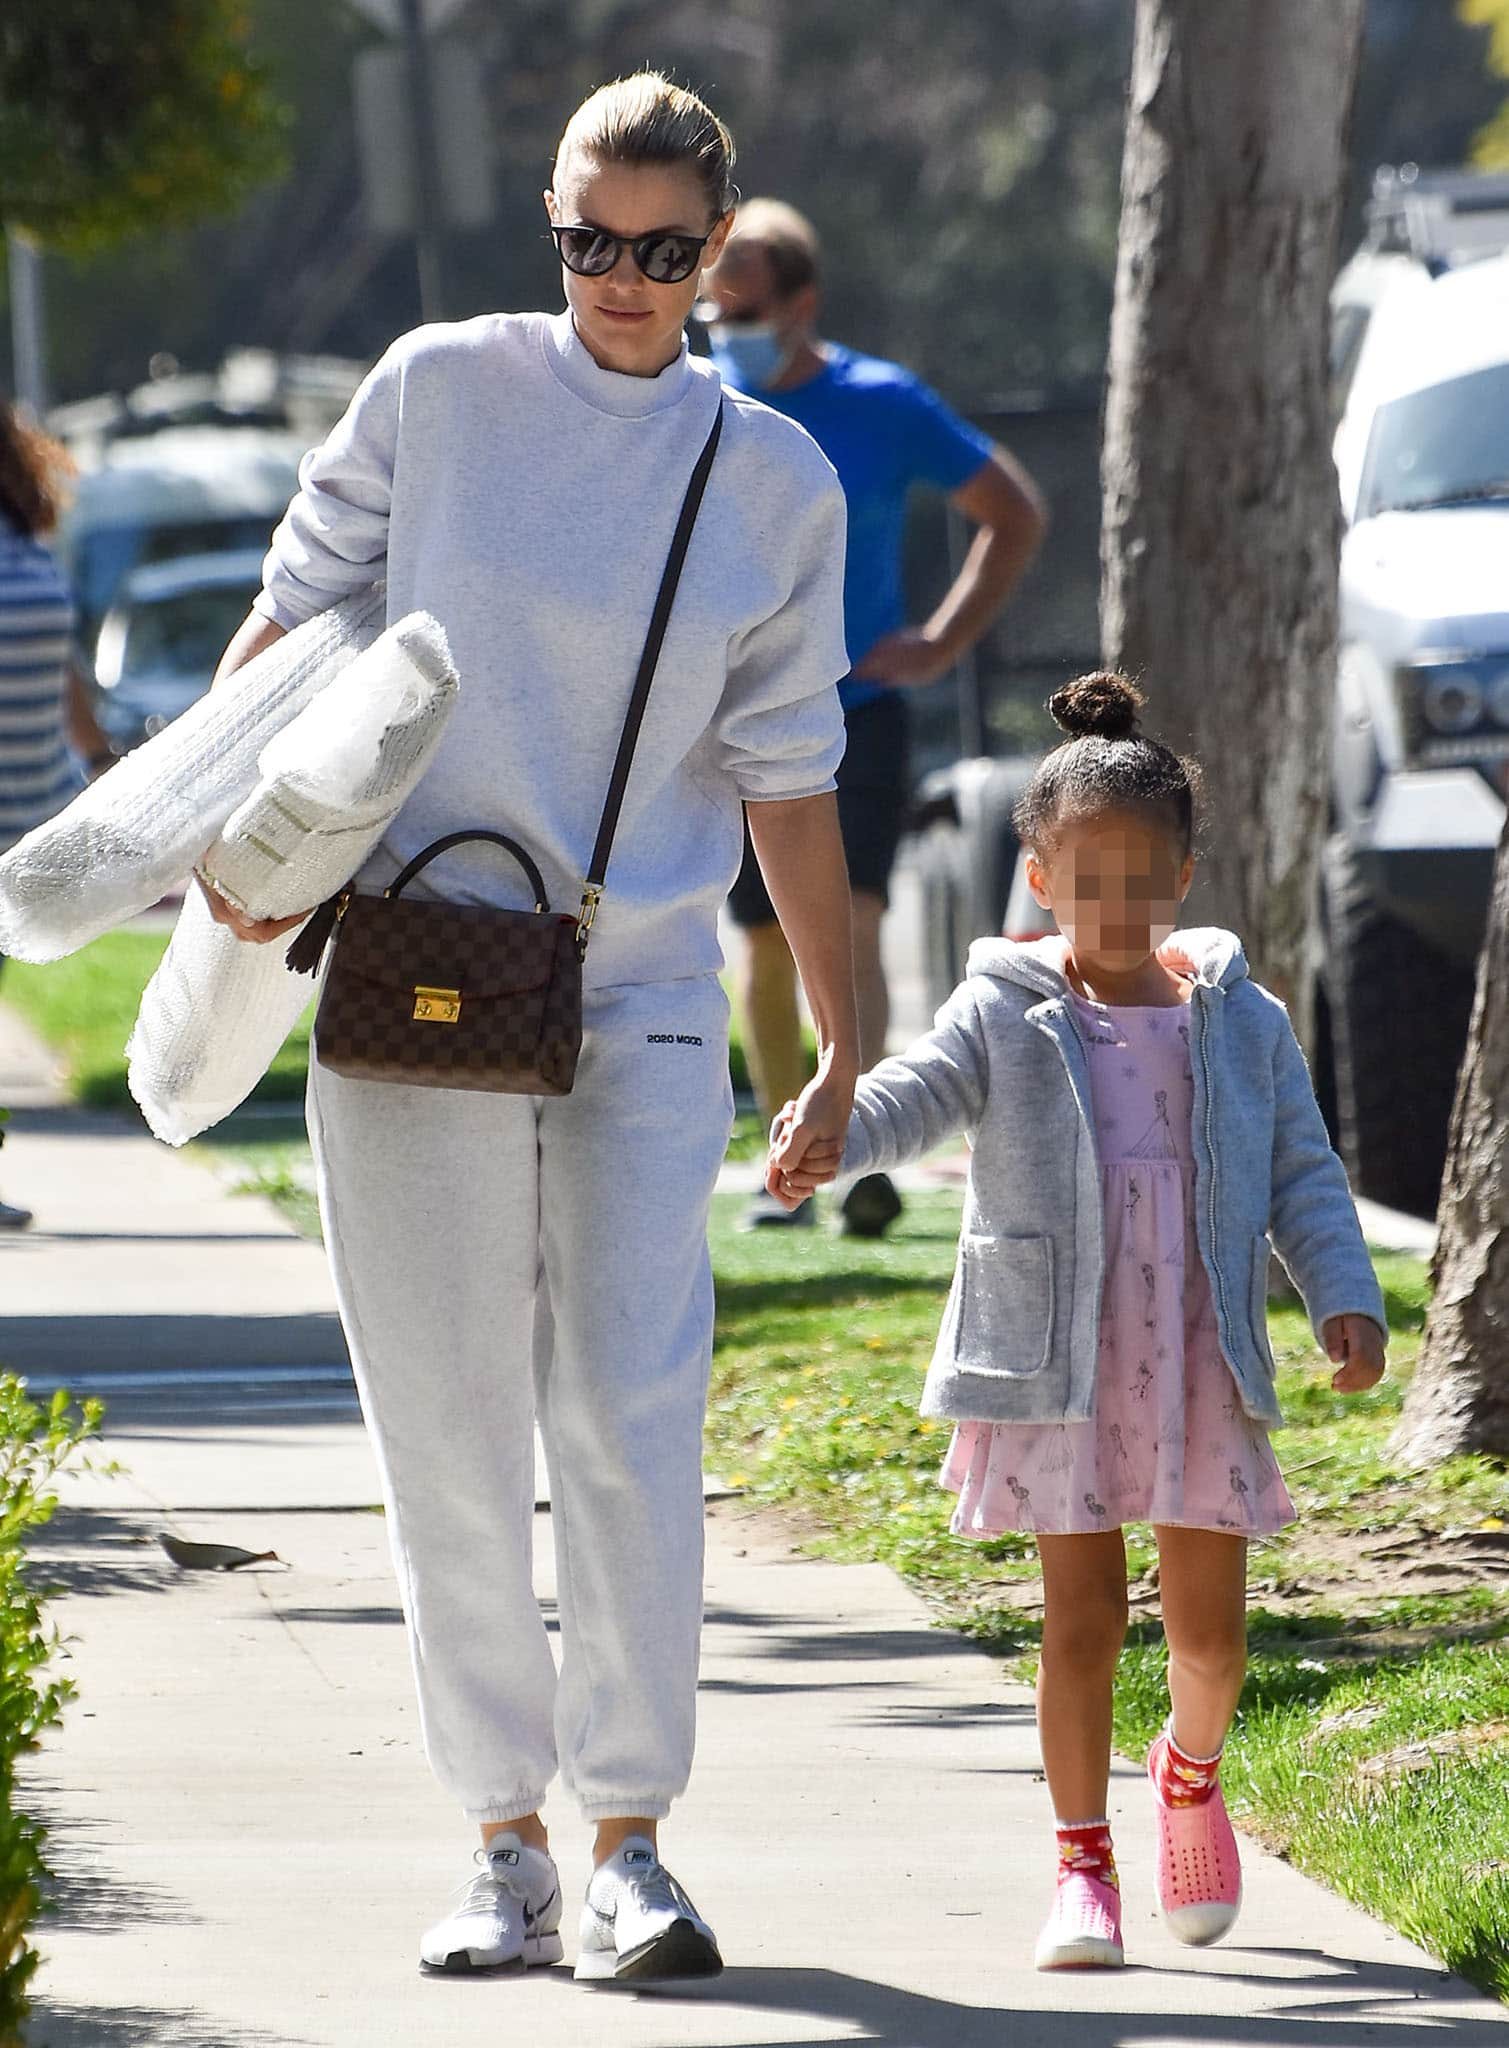 Paige Butcher wearing a gray sweater, sweatpants, and Nike shoes while out with daughter Izzy in Los Angeles on March 6, 2021